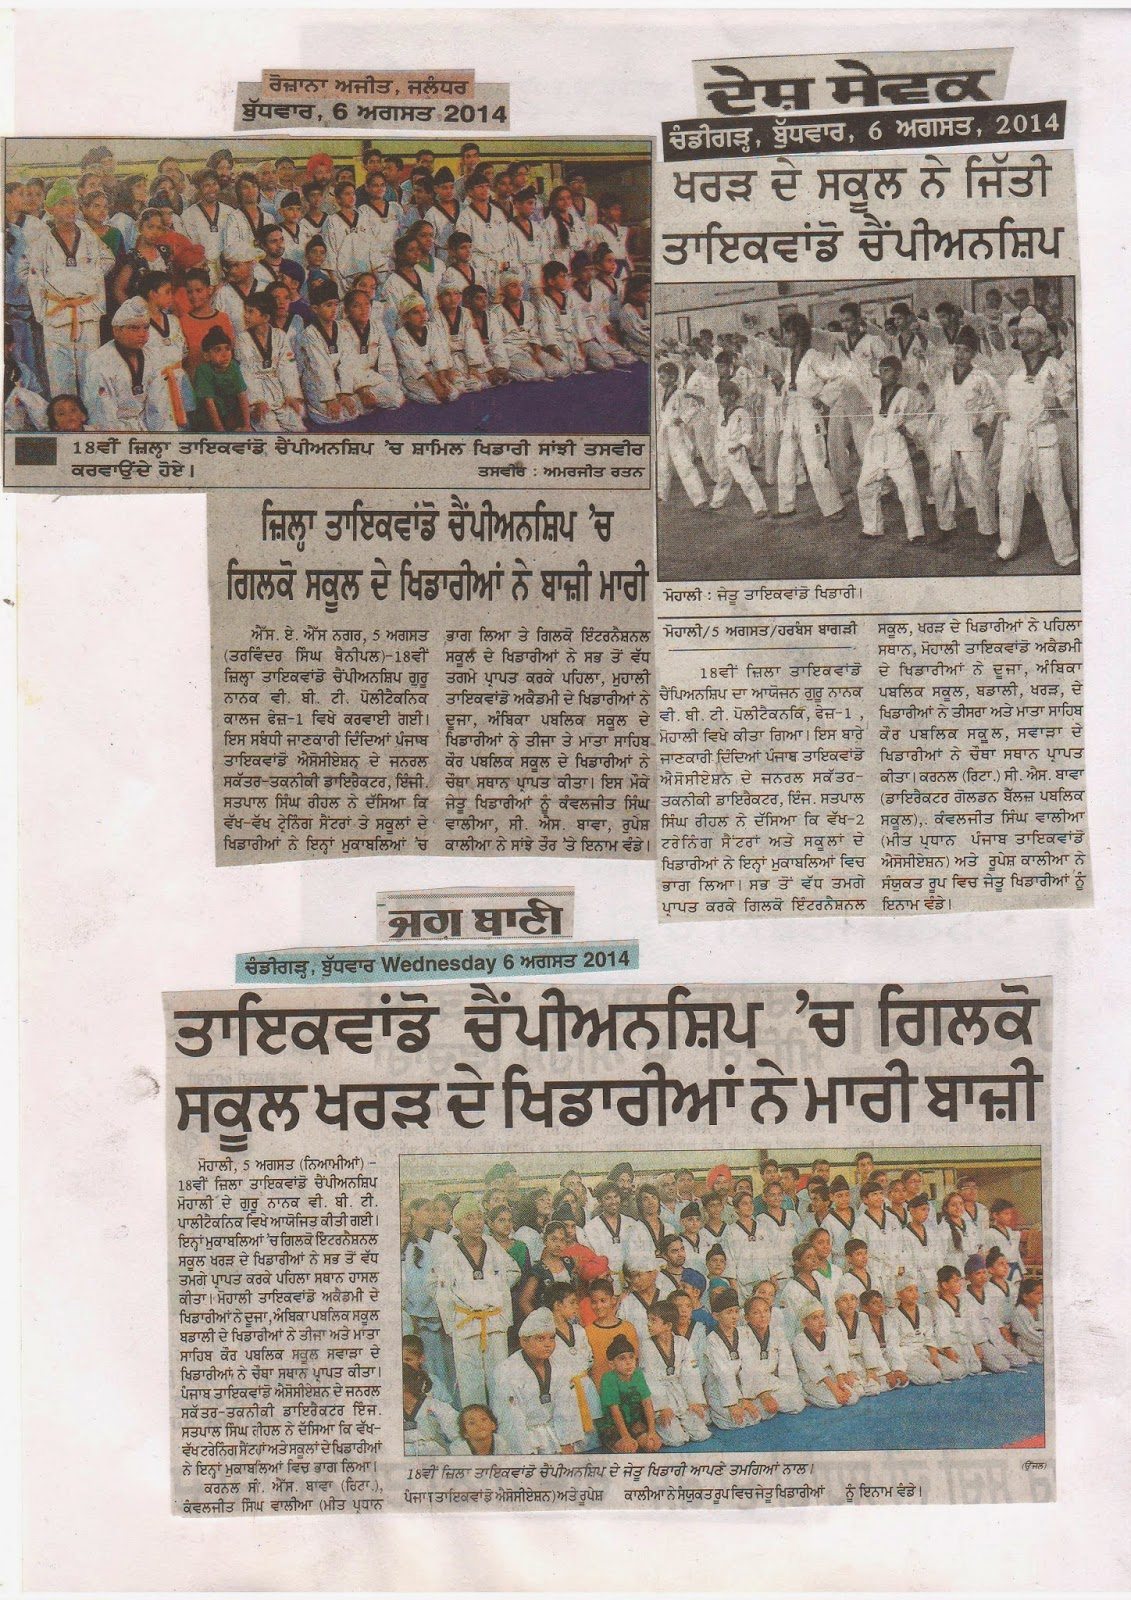 18th District Mohali C'ship Aug 2014, Taekwondo, Martial Arts, Tkd, Championships, Training, Classes, Coaching, Self-defence, Girls, Women, Safety, Fitness,  Mohali, SAS Nagar, near Chandigarh, Punjab, India, World, Shere, Lions, Videos, Movies, Master, Er. Satpal Singh Rehal, Rehal, Academy, Association, Federation, Clubs, Satpal Rehal, Korean Judo Karate, Chandigarh, Reiki, Healing, Kot Maira, Garhshankar, Hoshiarpur, Jalandhar, Amritsar, Patiala, Mansa, Ludhiana, Ferozepur, Sangrur, Moga, Pathankot, Gurdaspur, Barnala, Nawanshahar, Ropar, Ajitgarh, Fatehgarh Sahib, Taran Taran, Patti, Faridkot, Winners, Medal Ceremony, Chief Guest, TAP, PTA, Grandmaster, Reiki, TFI, Jimmy R Jagtiani, Lucknow, School, Games, Players